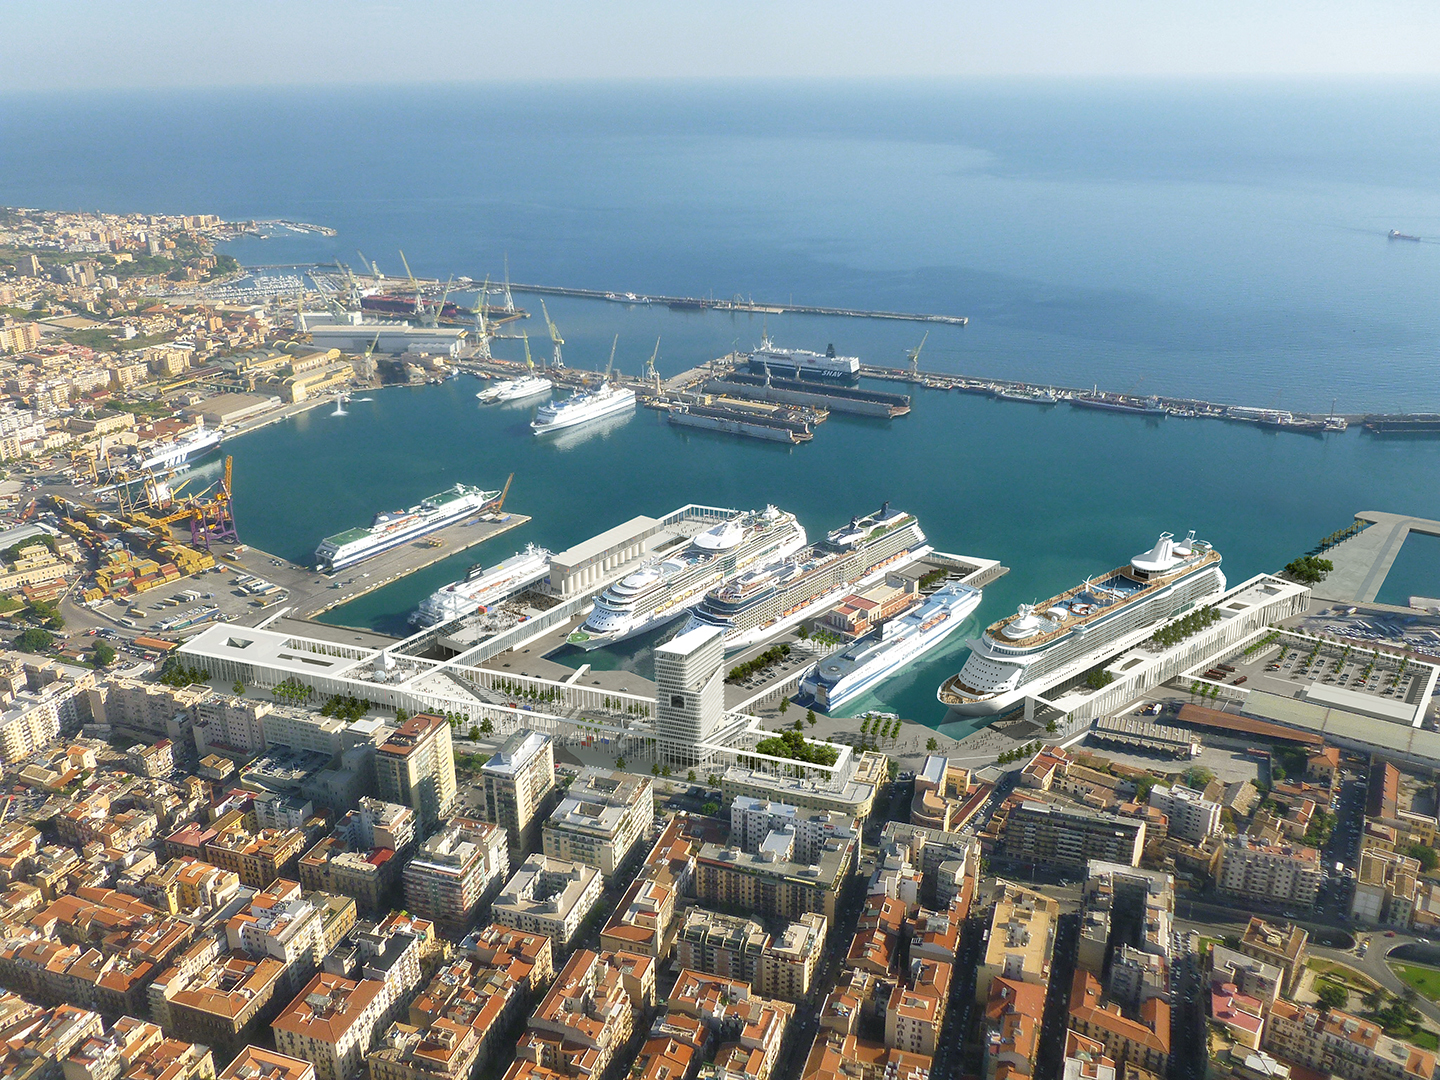 Palermo Cruise Terminal Design Competition